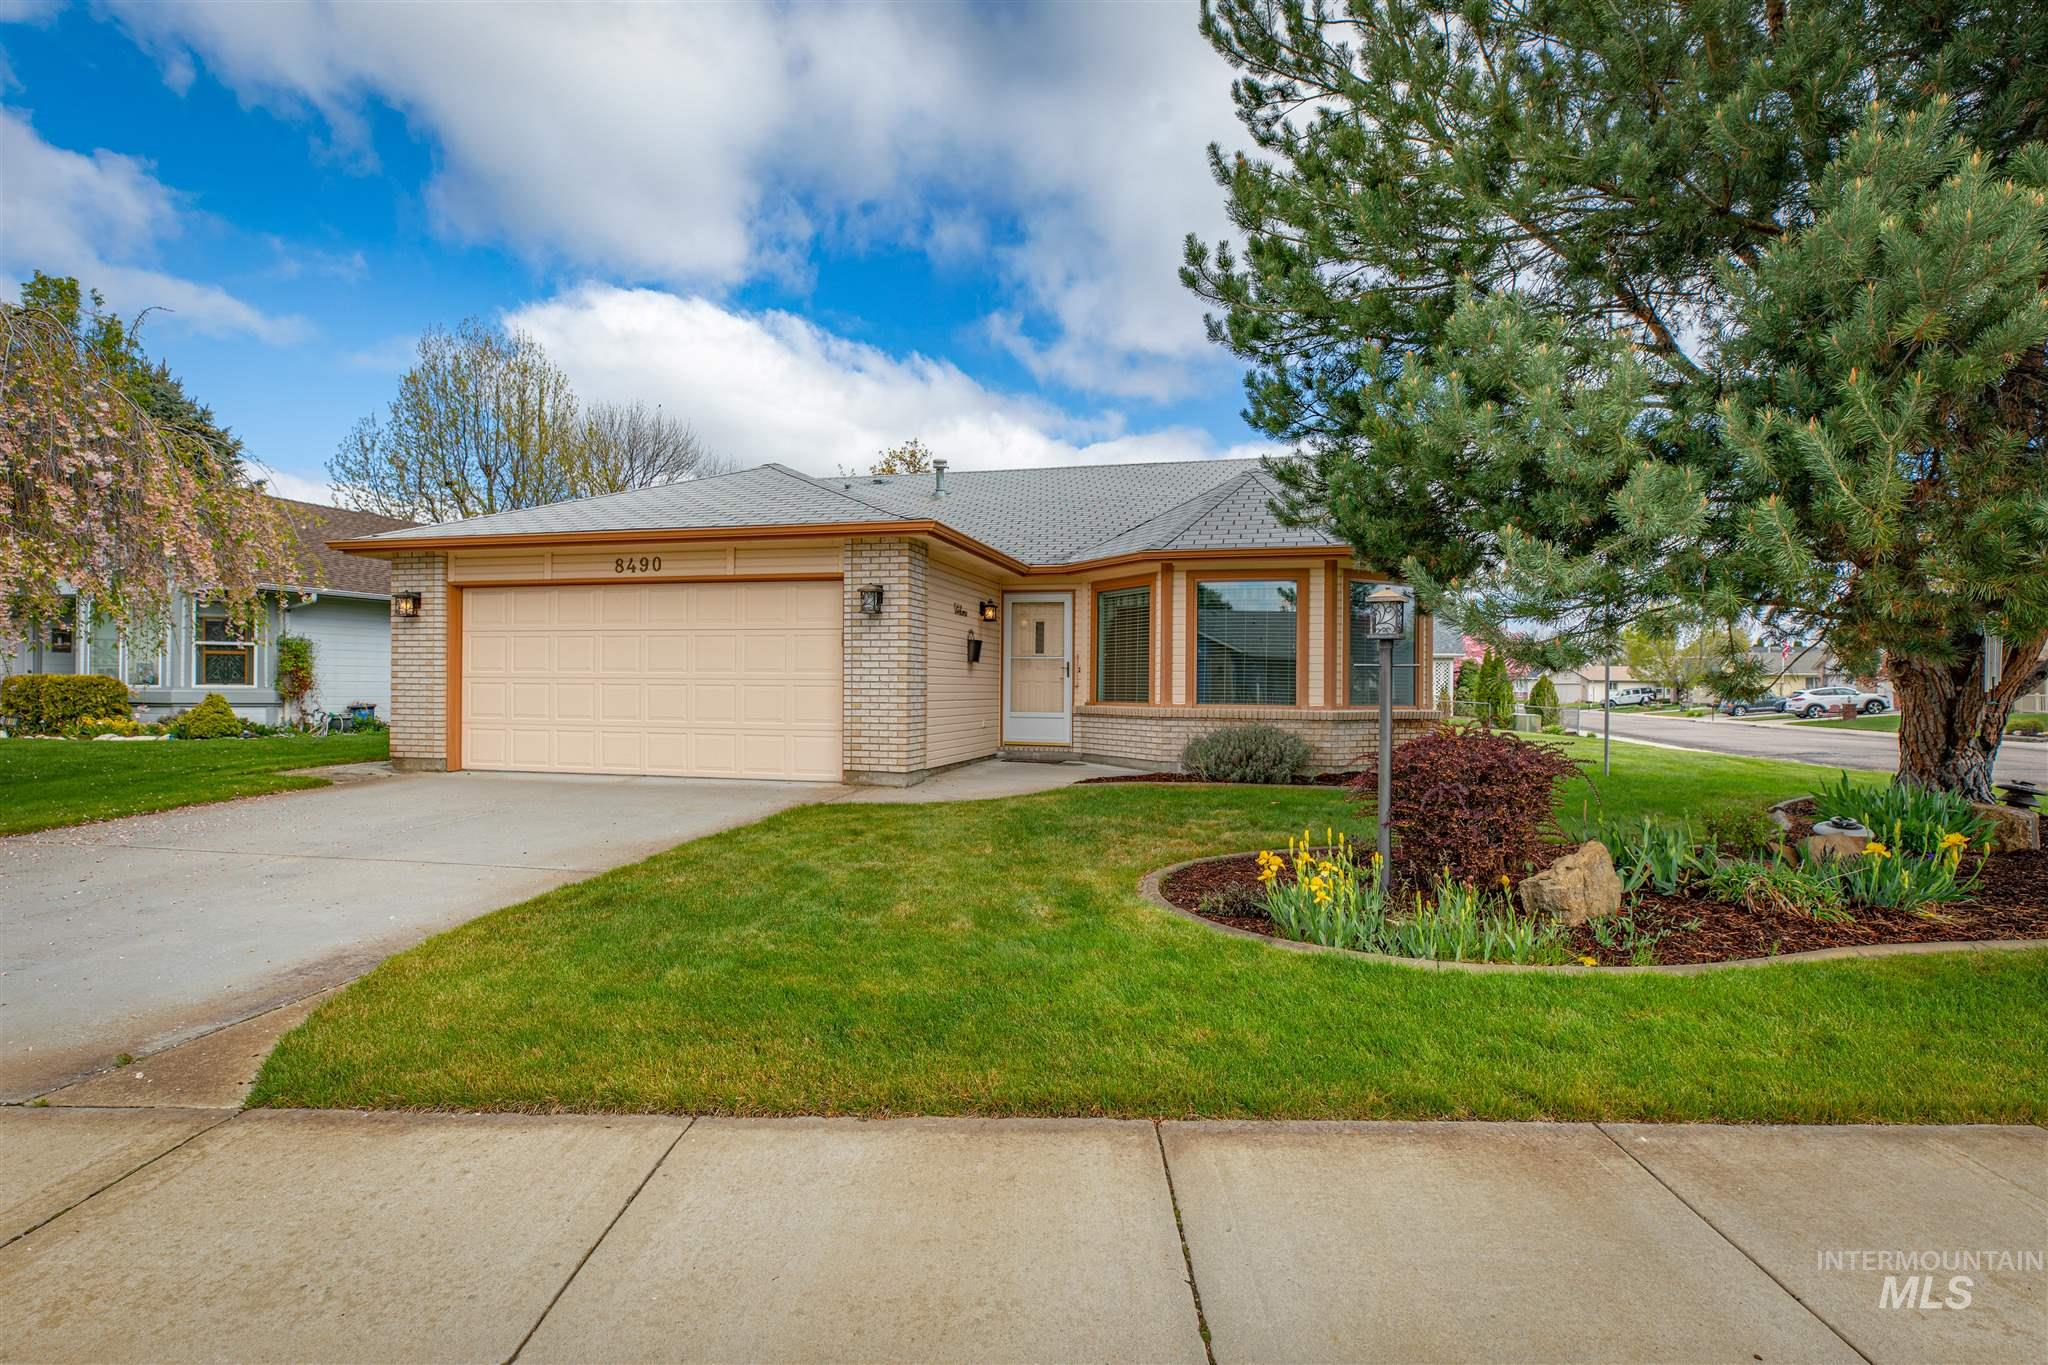 8490 W Clubhouse Lane Property Photo - Garden City, ID real estate listing